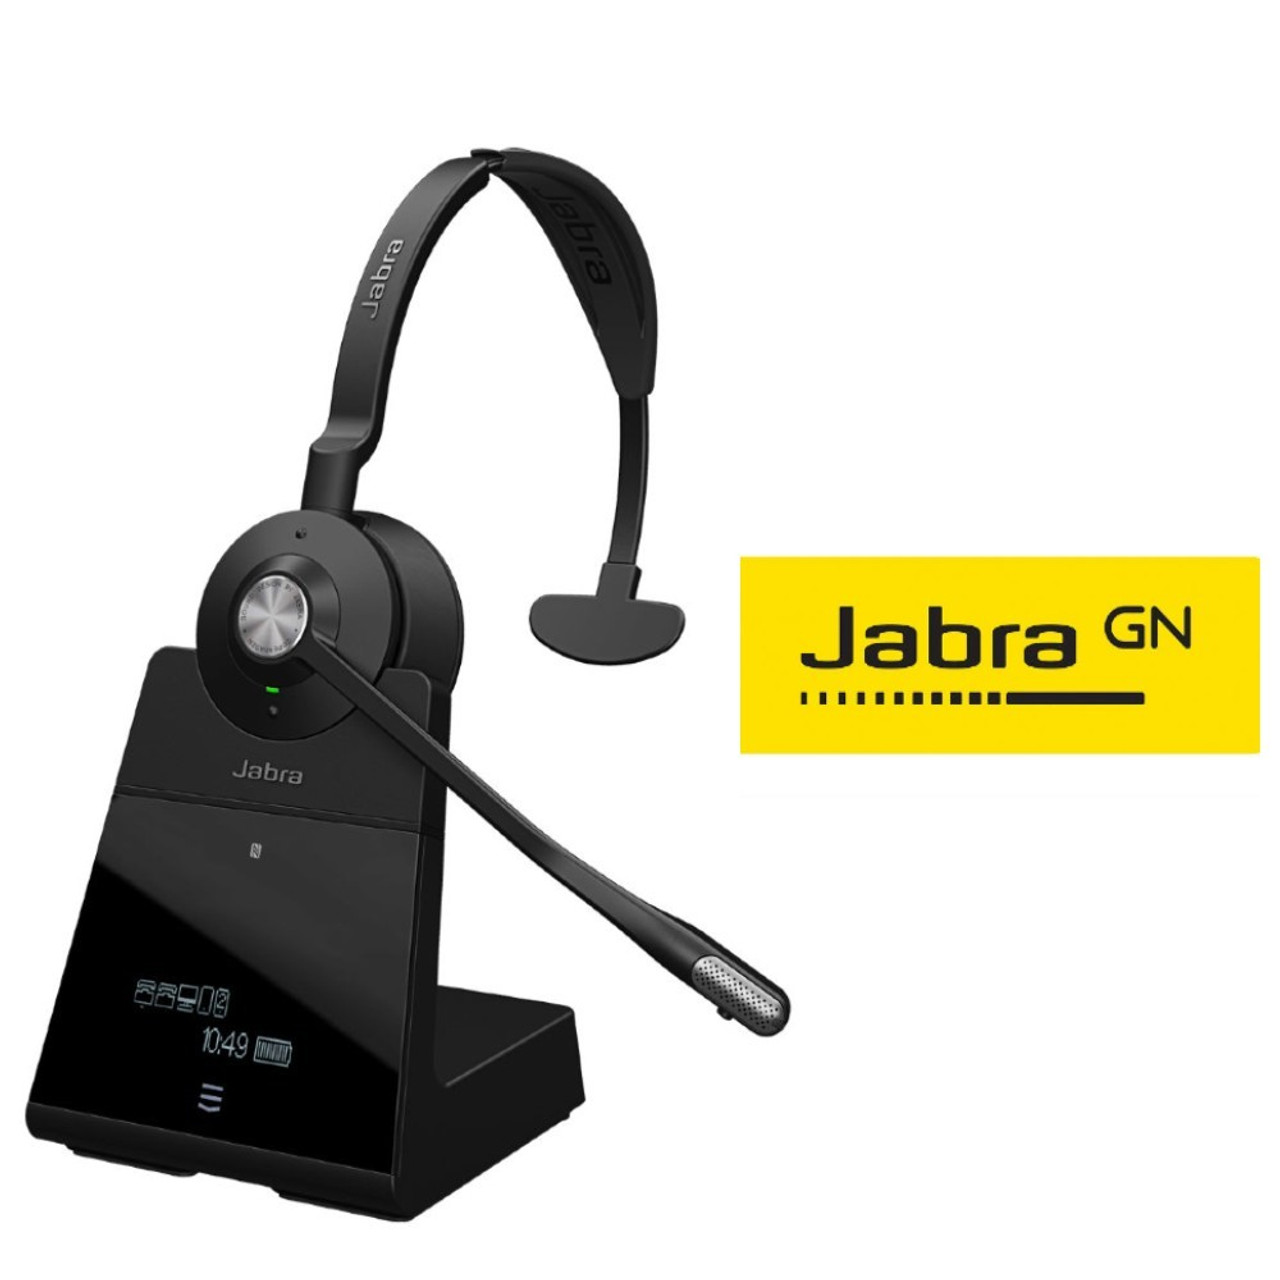 Jabra Headsets